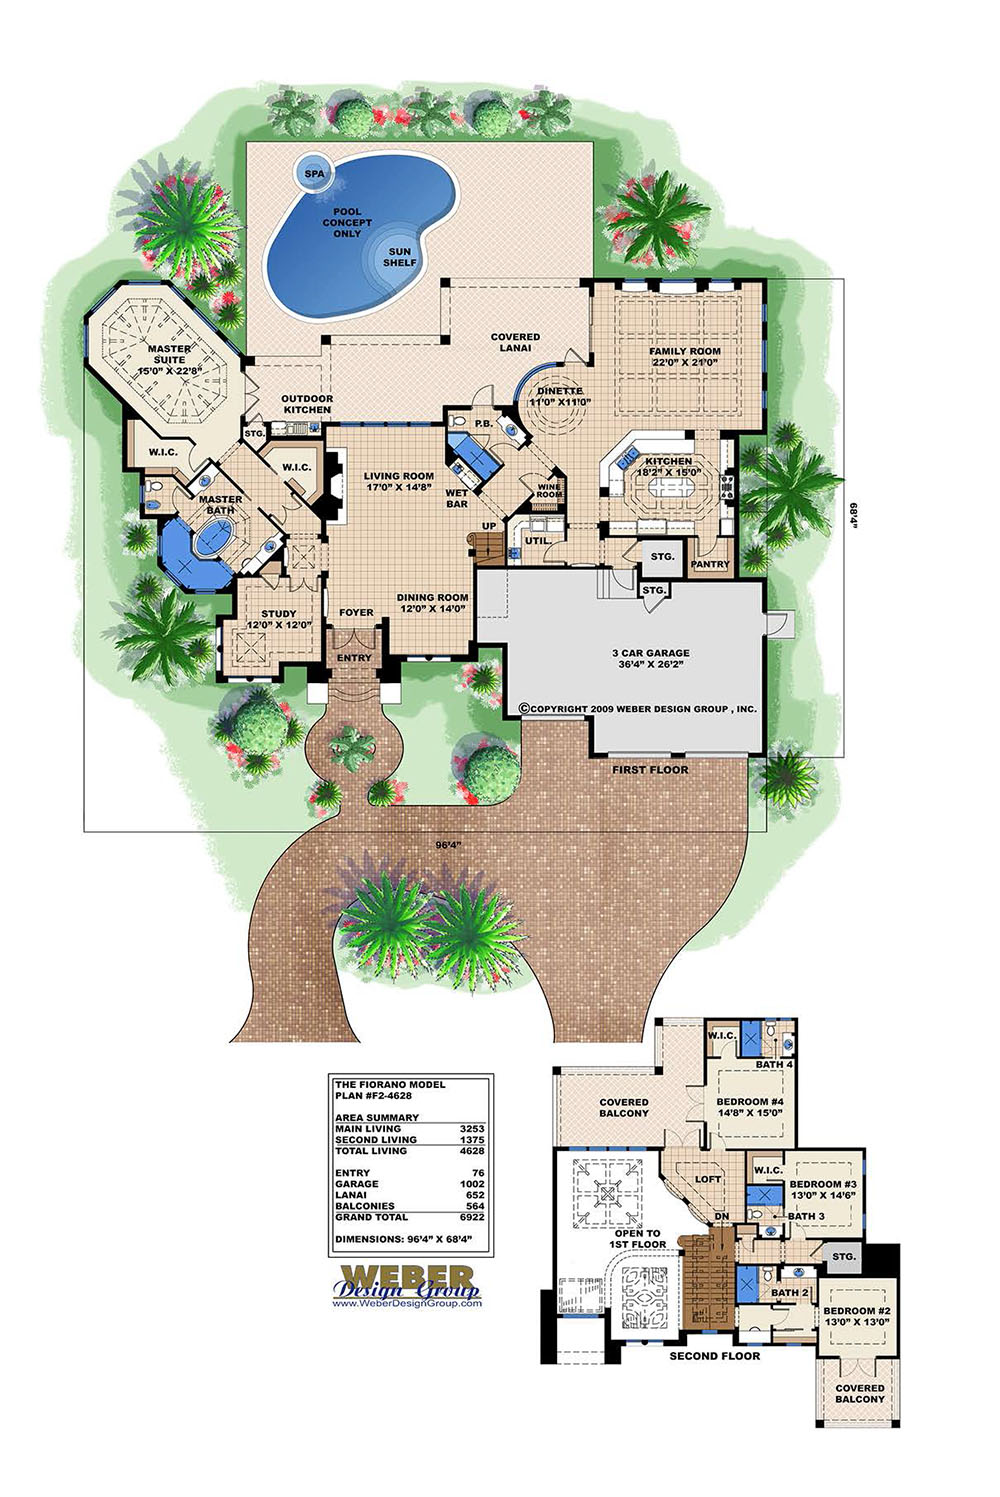 Fiorano house plan weber design group for Weber house plans